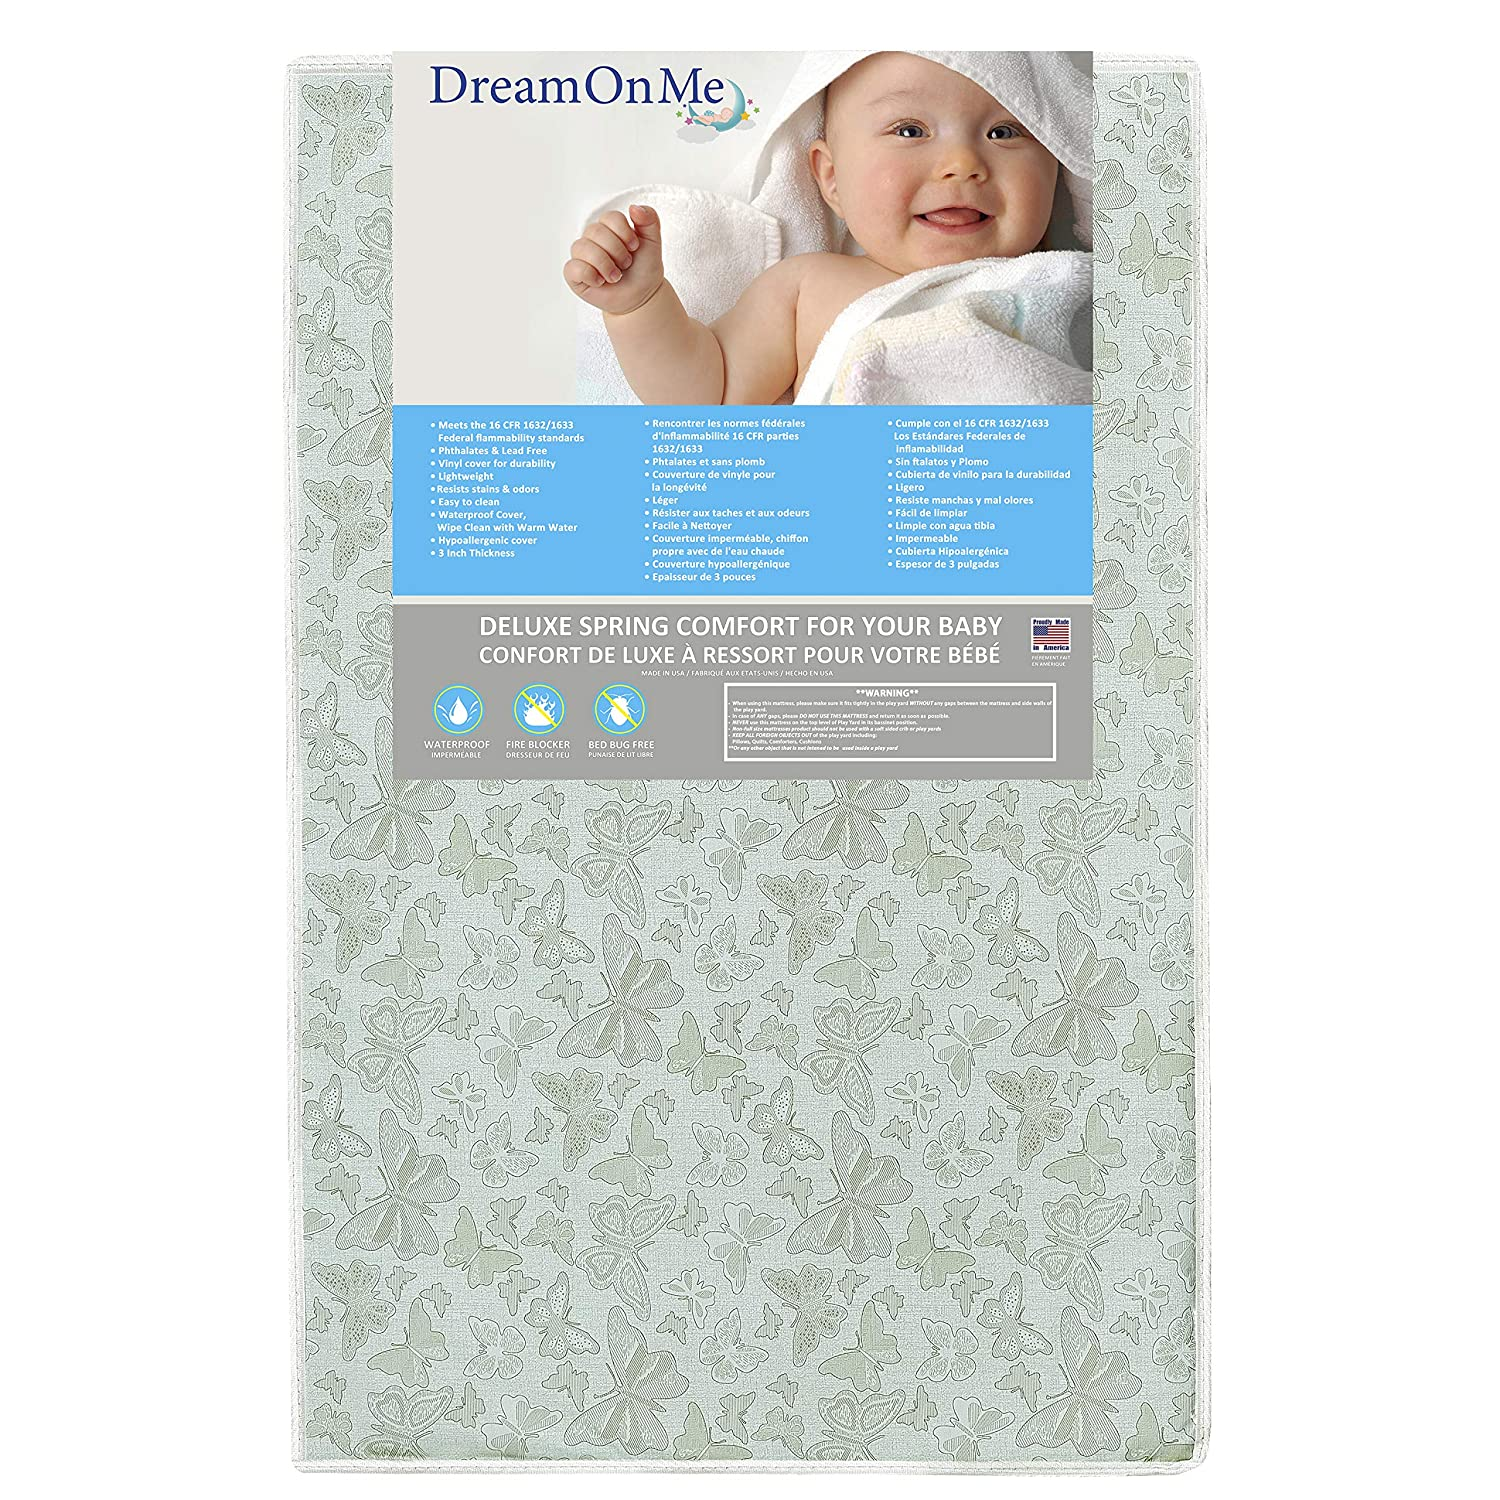 Dream On Me Breathable 2-In-1 Foam Core Crib and Toddler Bed Mattress 5 Inch